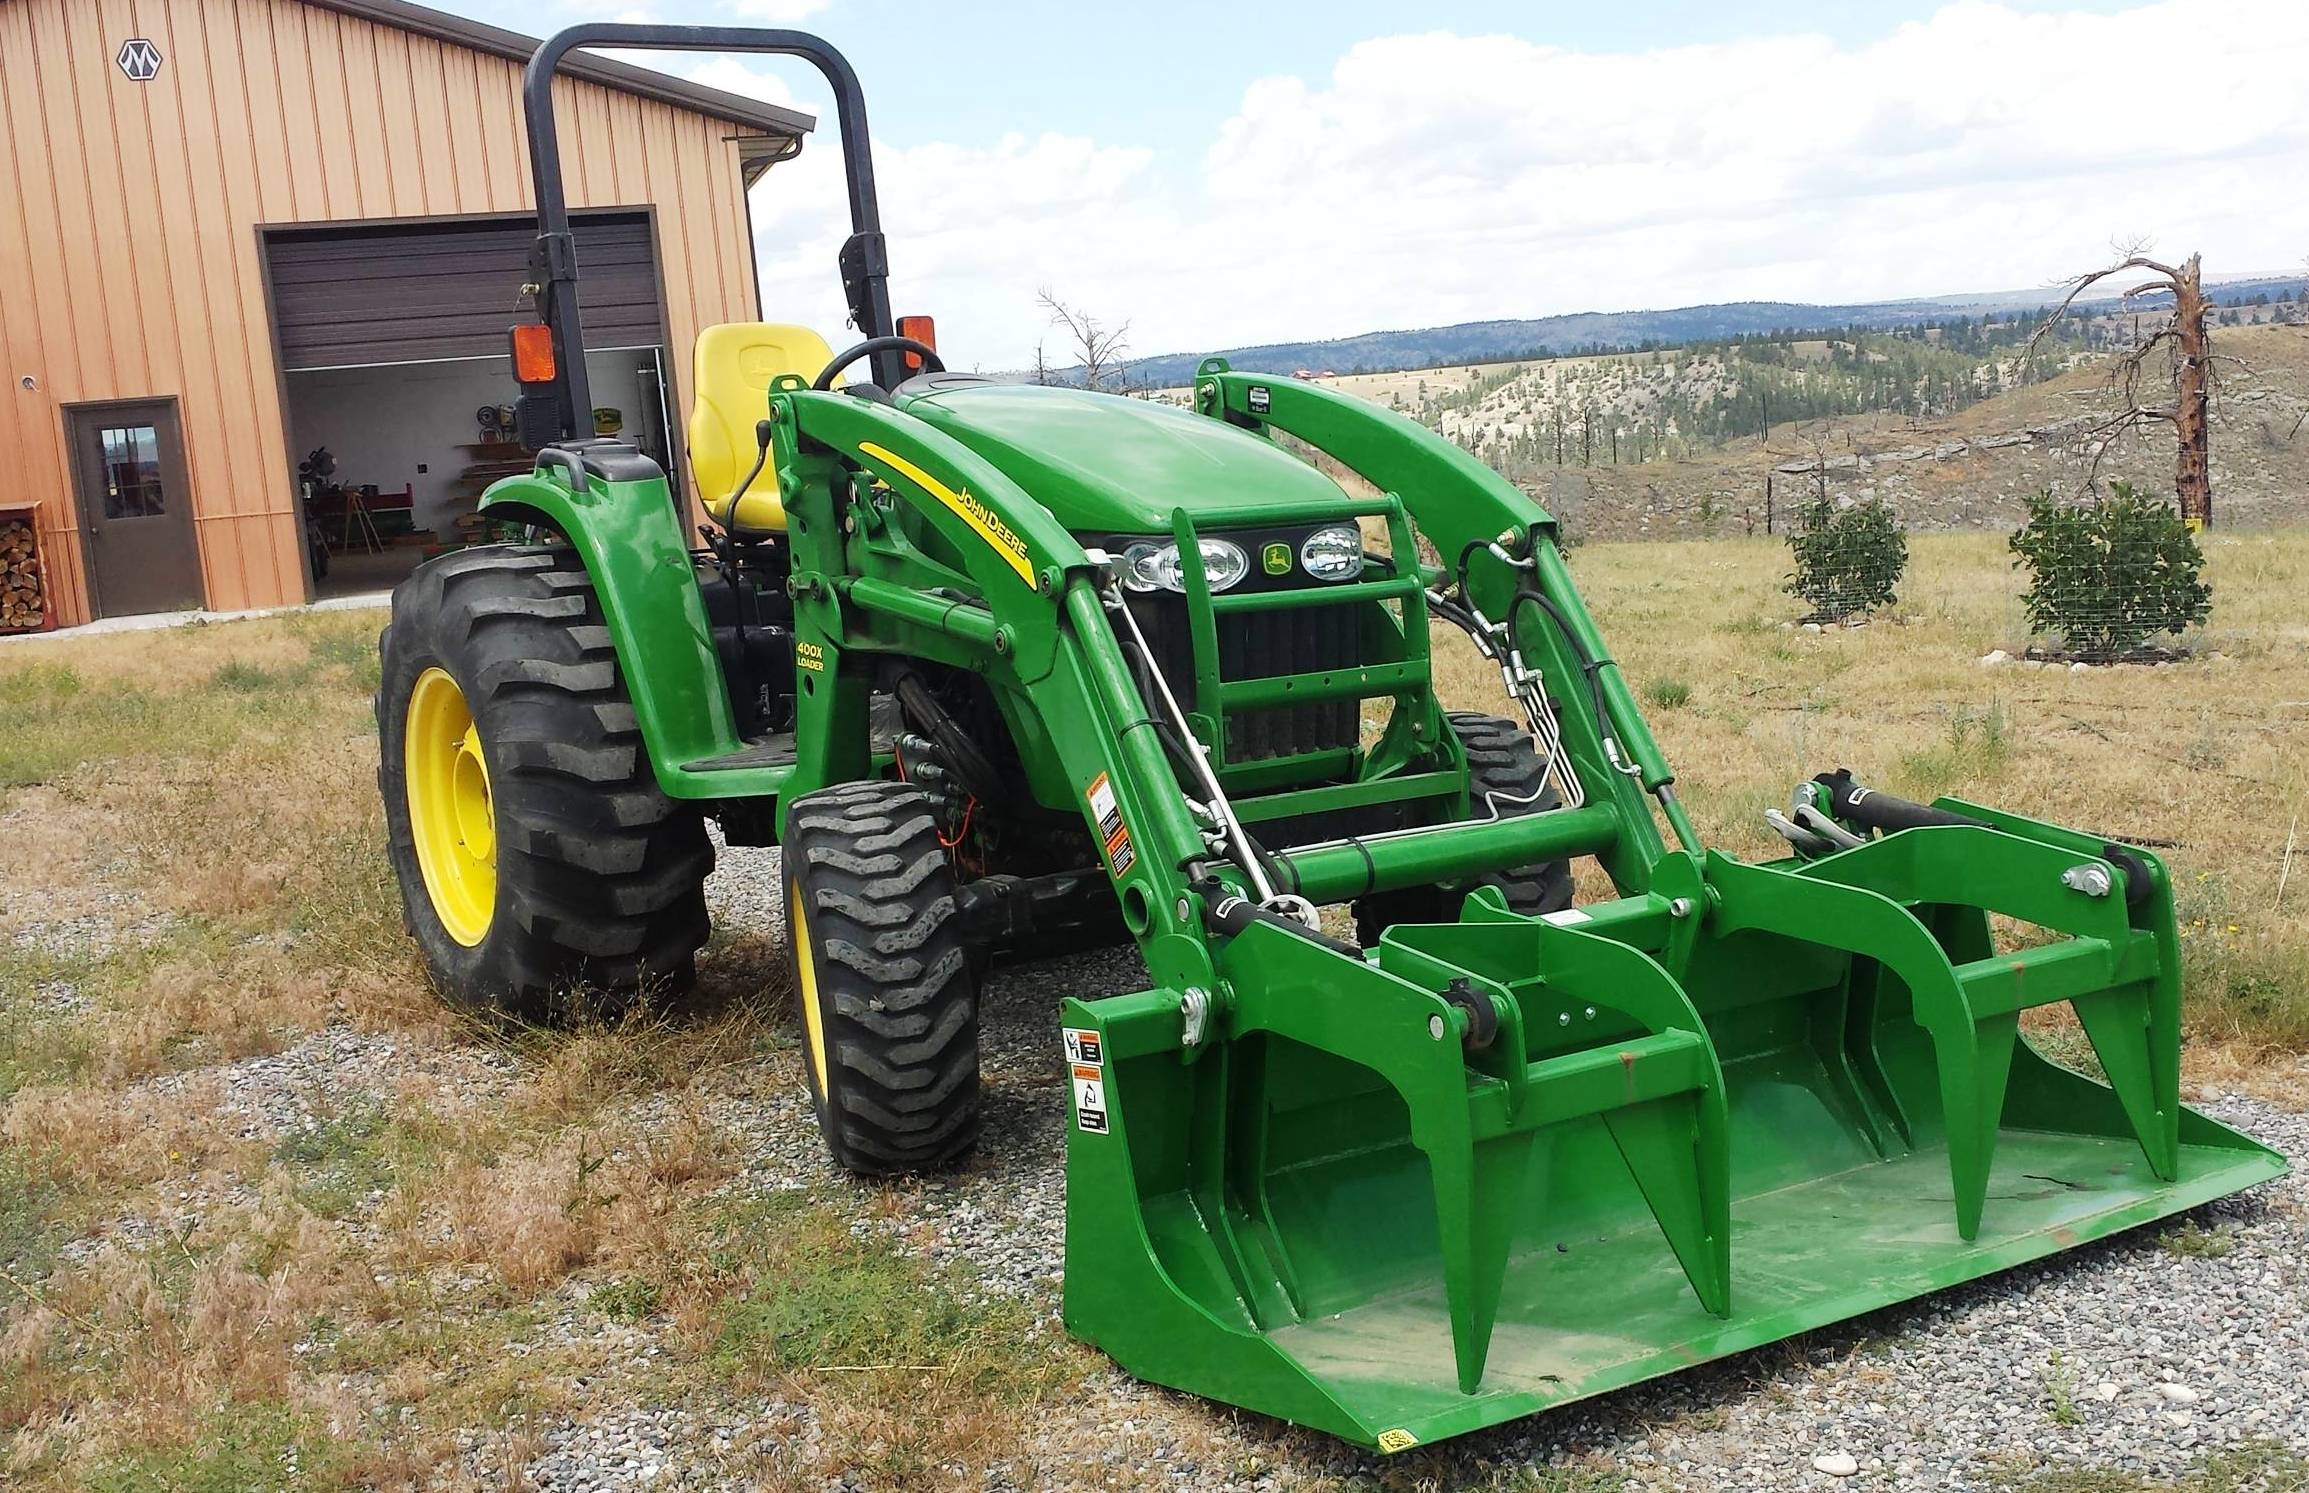 2015-07-24 - Tractor Upgraded with new Grapple Bucket - July 24 2015 #1.jpg